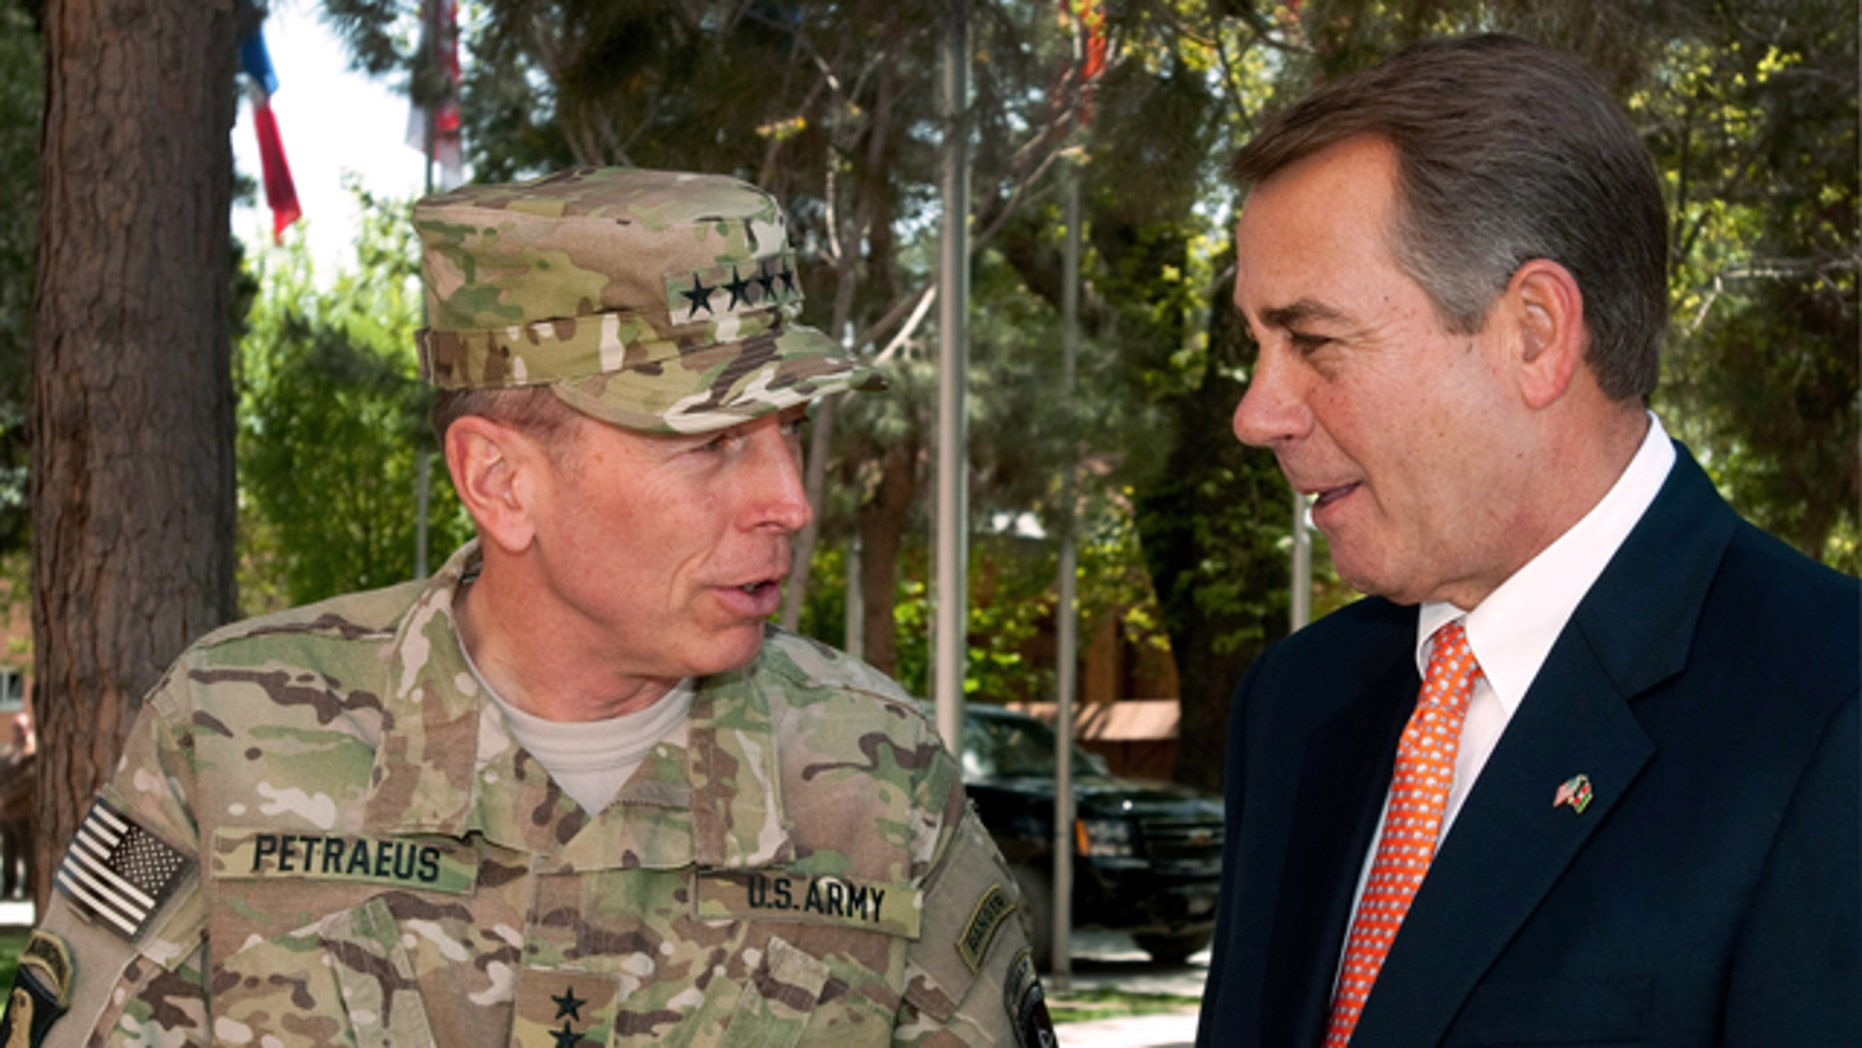 April 19: In this photo provided by ISAF Headquarters, U.S. Army Gen. David H. Petraeus, commander of NATO and International Security Assistance Force troops in Afghanistan, left, talks with House Speaker John Boehner of Ohio during a congressional delegation visit in Kabul, Afghanistan.